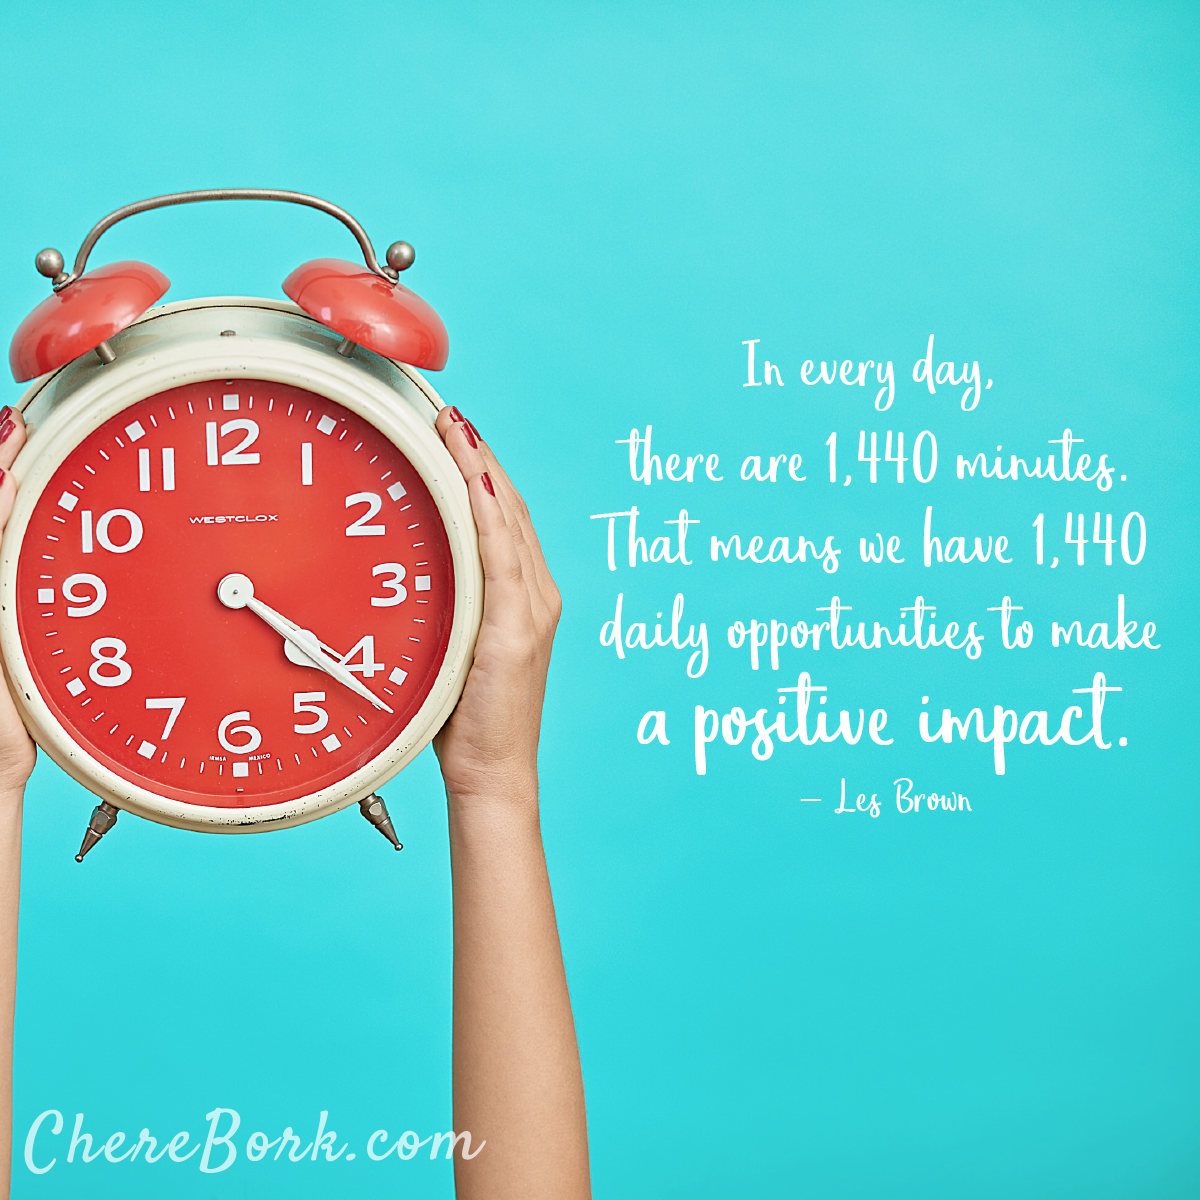 In every day, there are 1,440 minutes. That means we have 1,440 daily opportunities to make a positive impact. -Les Brown